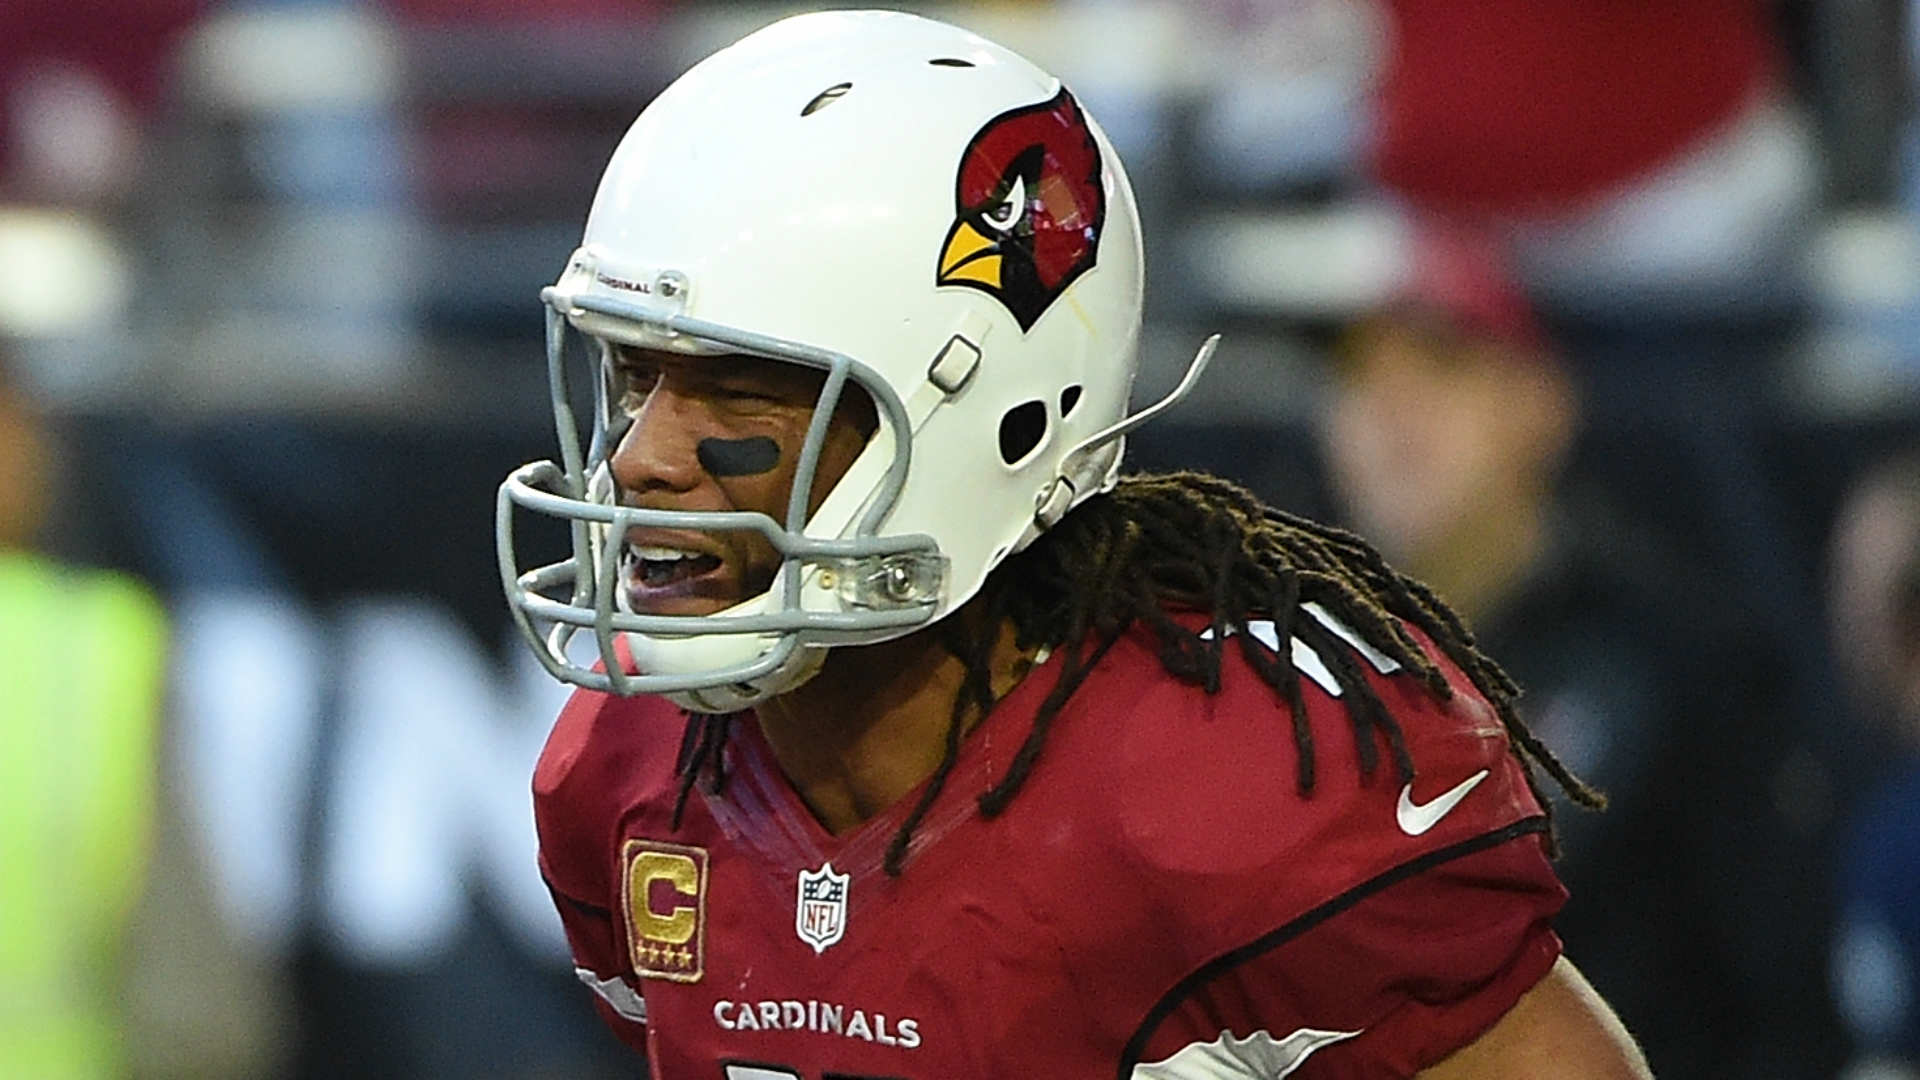 Larry Fitzgerald becomes sixth NFL receiver to reach 15,000 yards